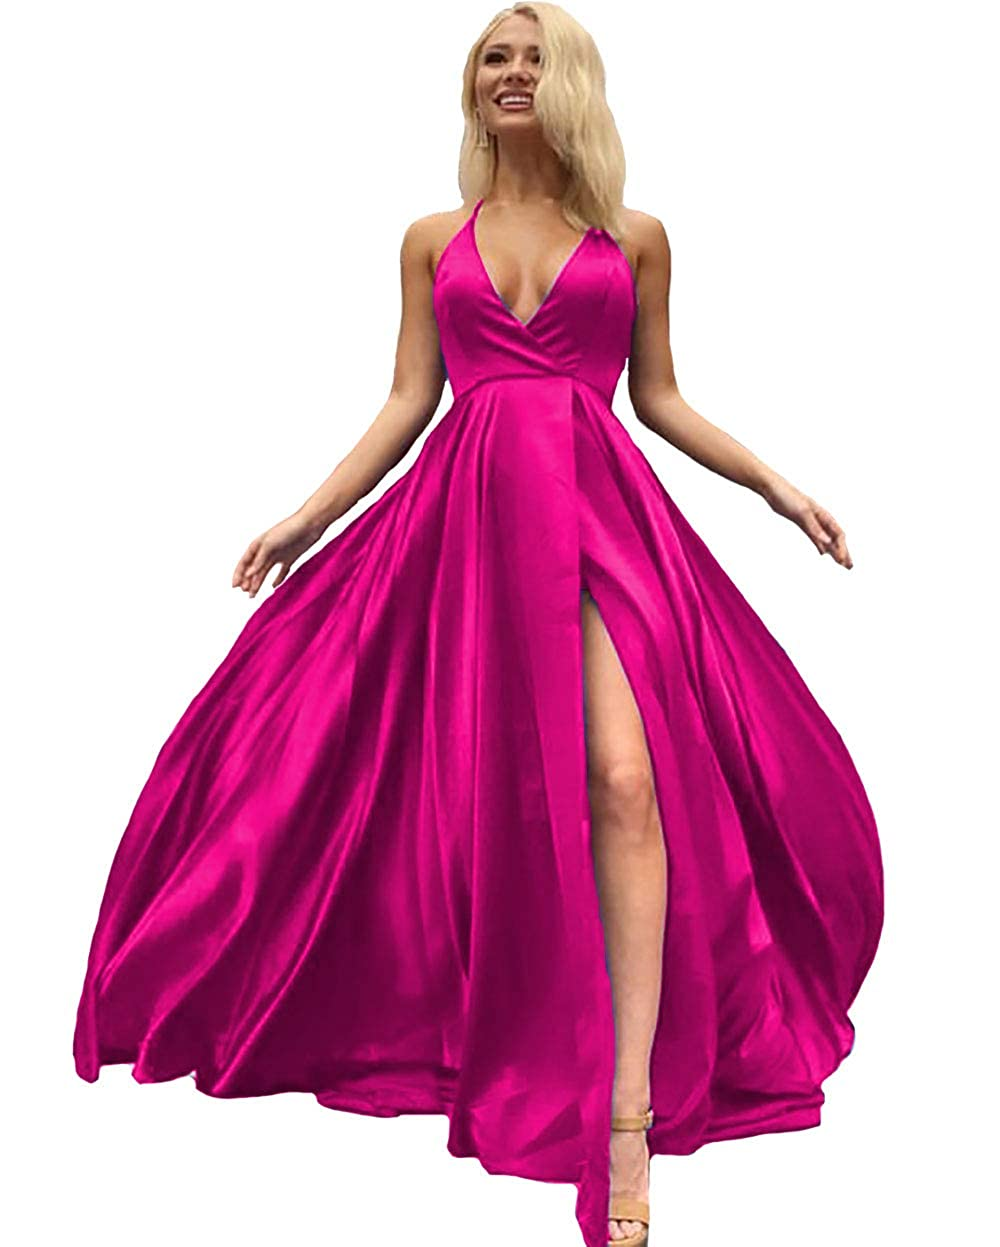 Hot Pink IVYPRECIOUS V Neck Side Split Prom Dresses A Line Long Evening Gowns for Women